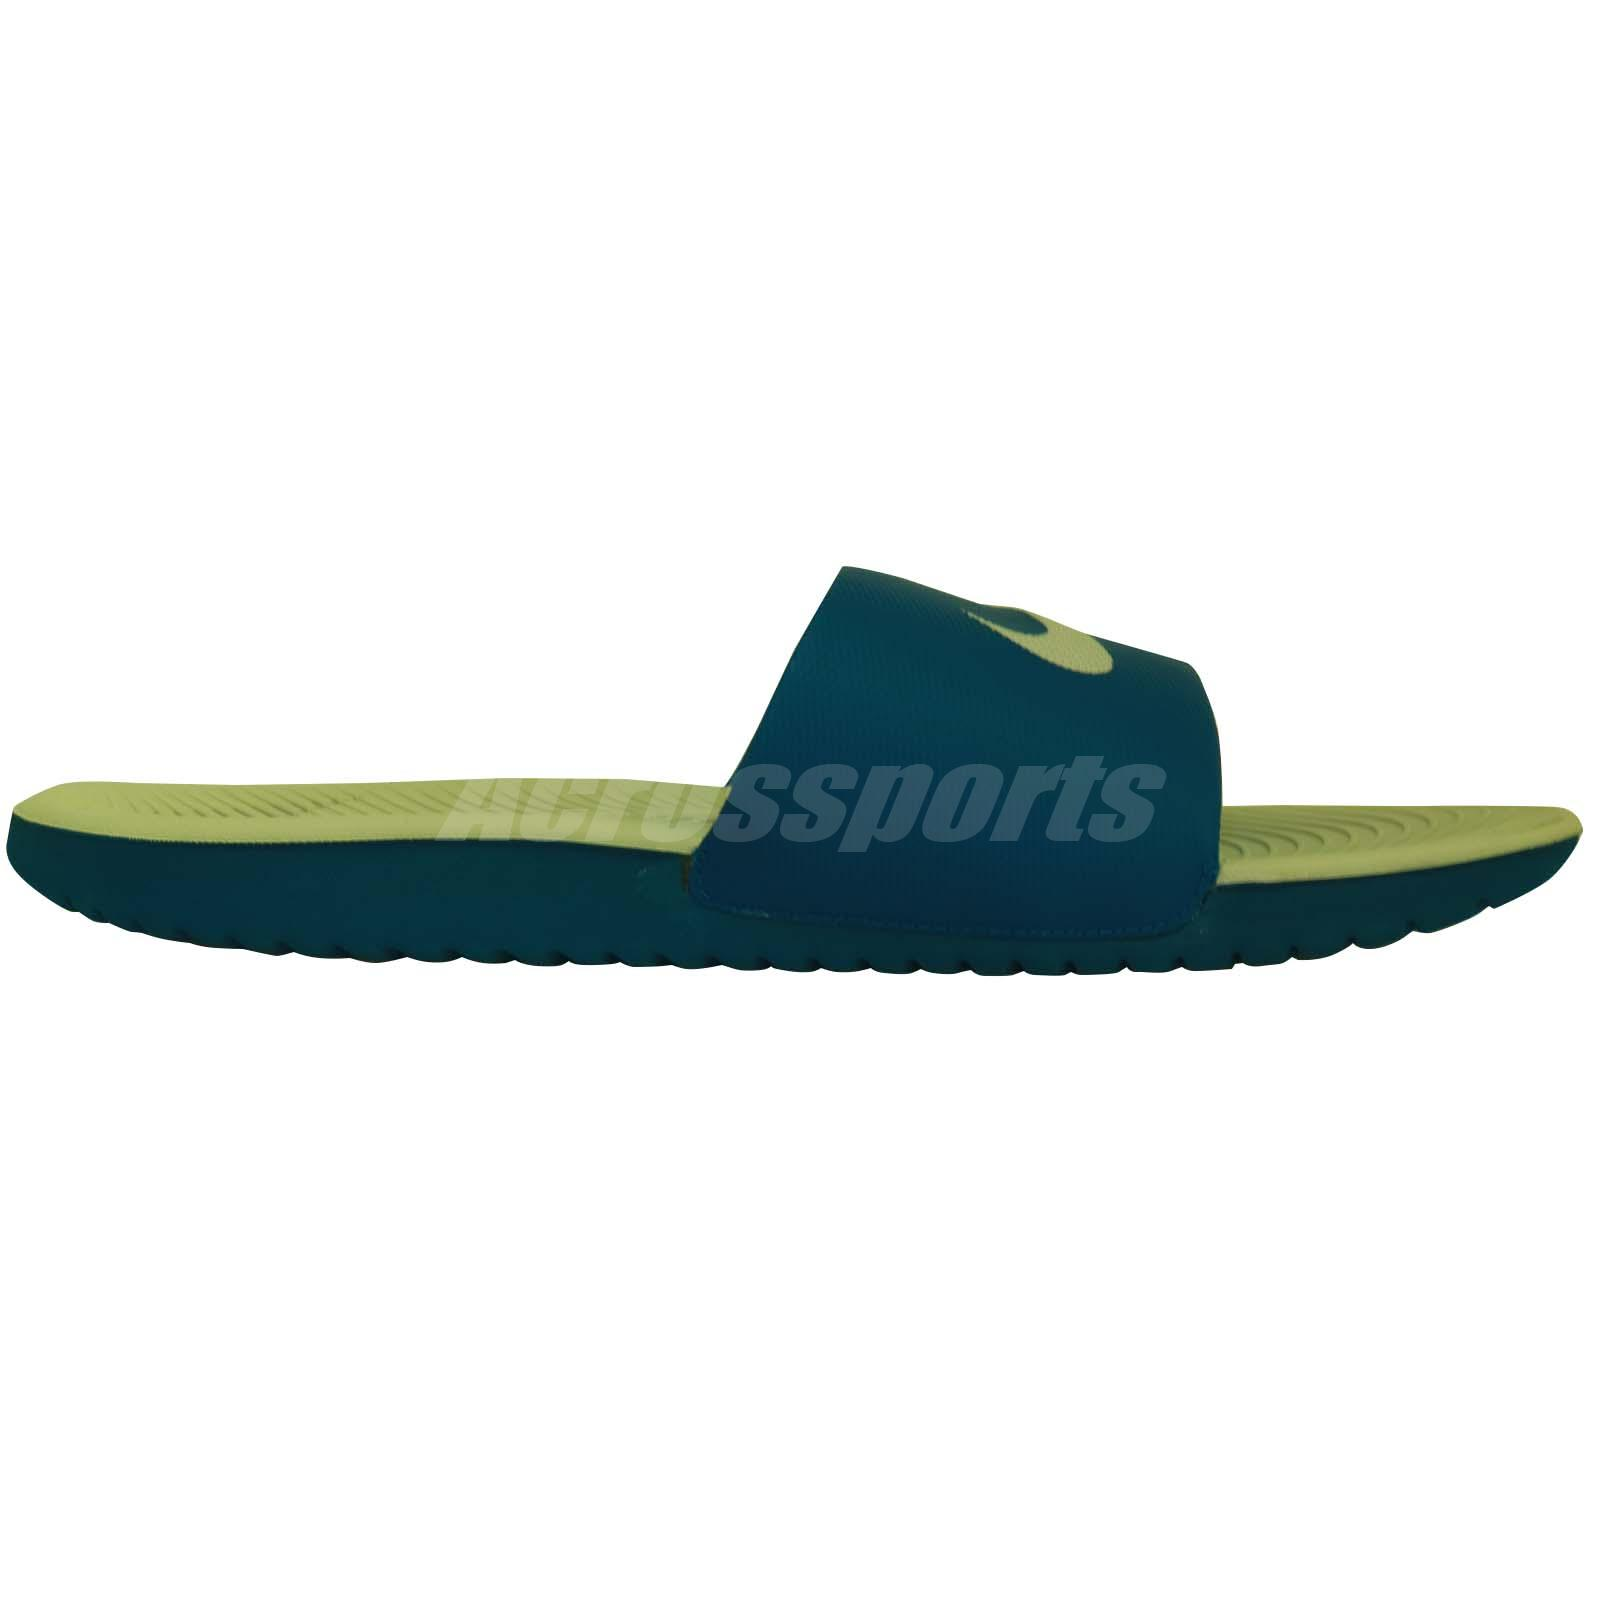 70fd6f9a922d9 Details about Nike Kawa Slide Sandals Flip Flps Granite Blue 832646-003